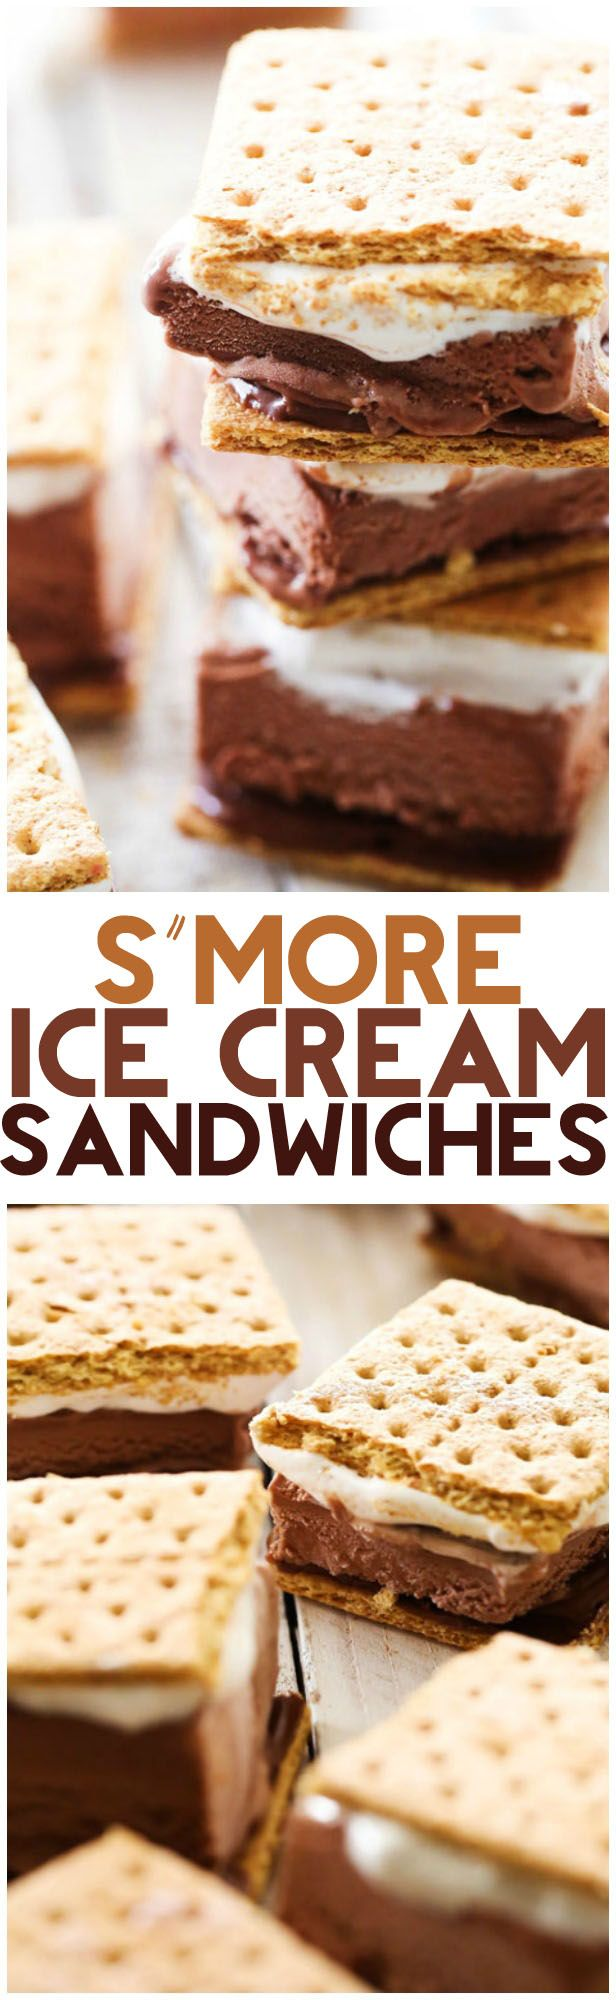 S'more Ice Cream Sandwiches... these are the PERFECT summer treat! Easy, tasty and a family favorite!